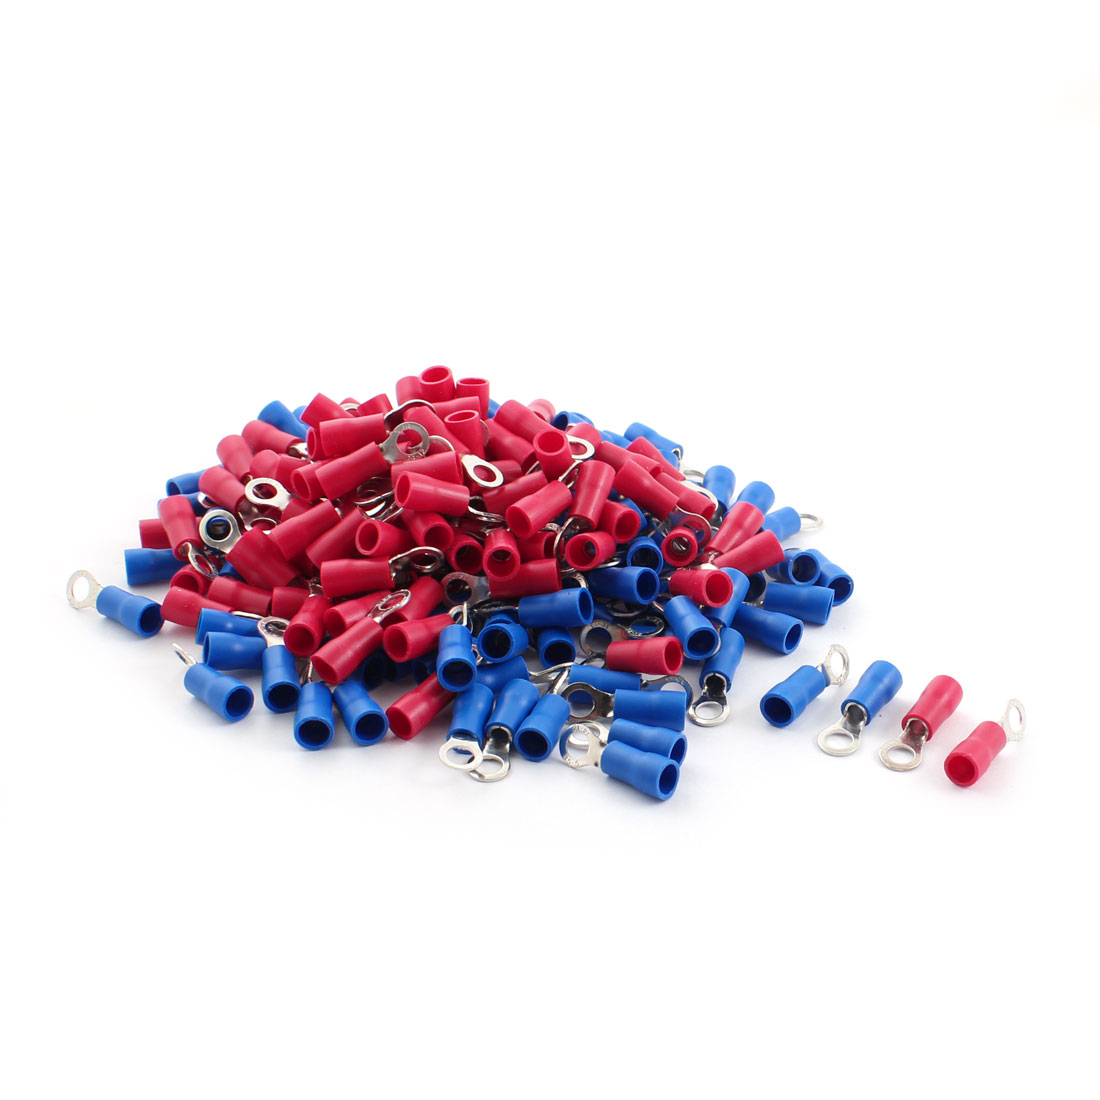 200Pcs RVS3.5-5 AWG 14-12 Cable Electric Wiring Insulating Ring Crimp Terminals